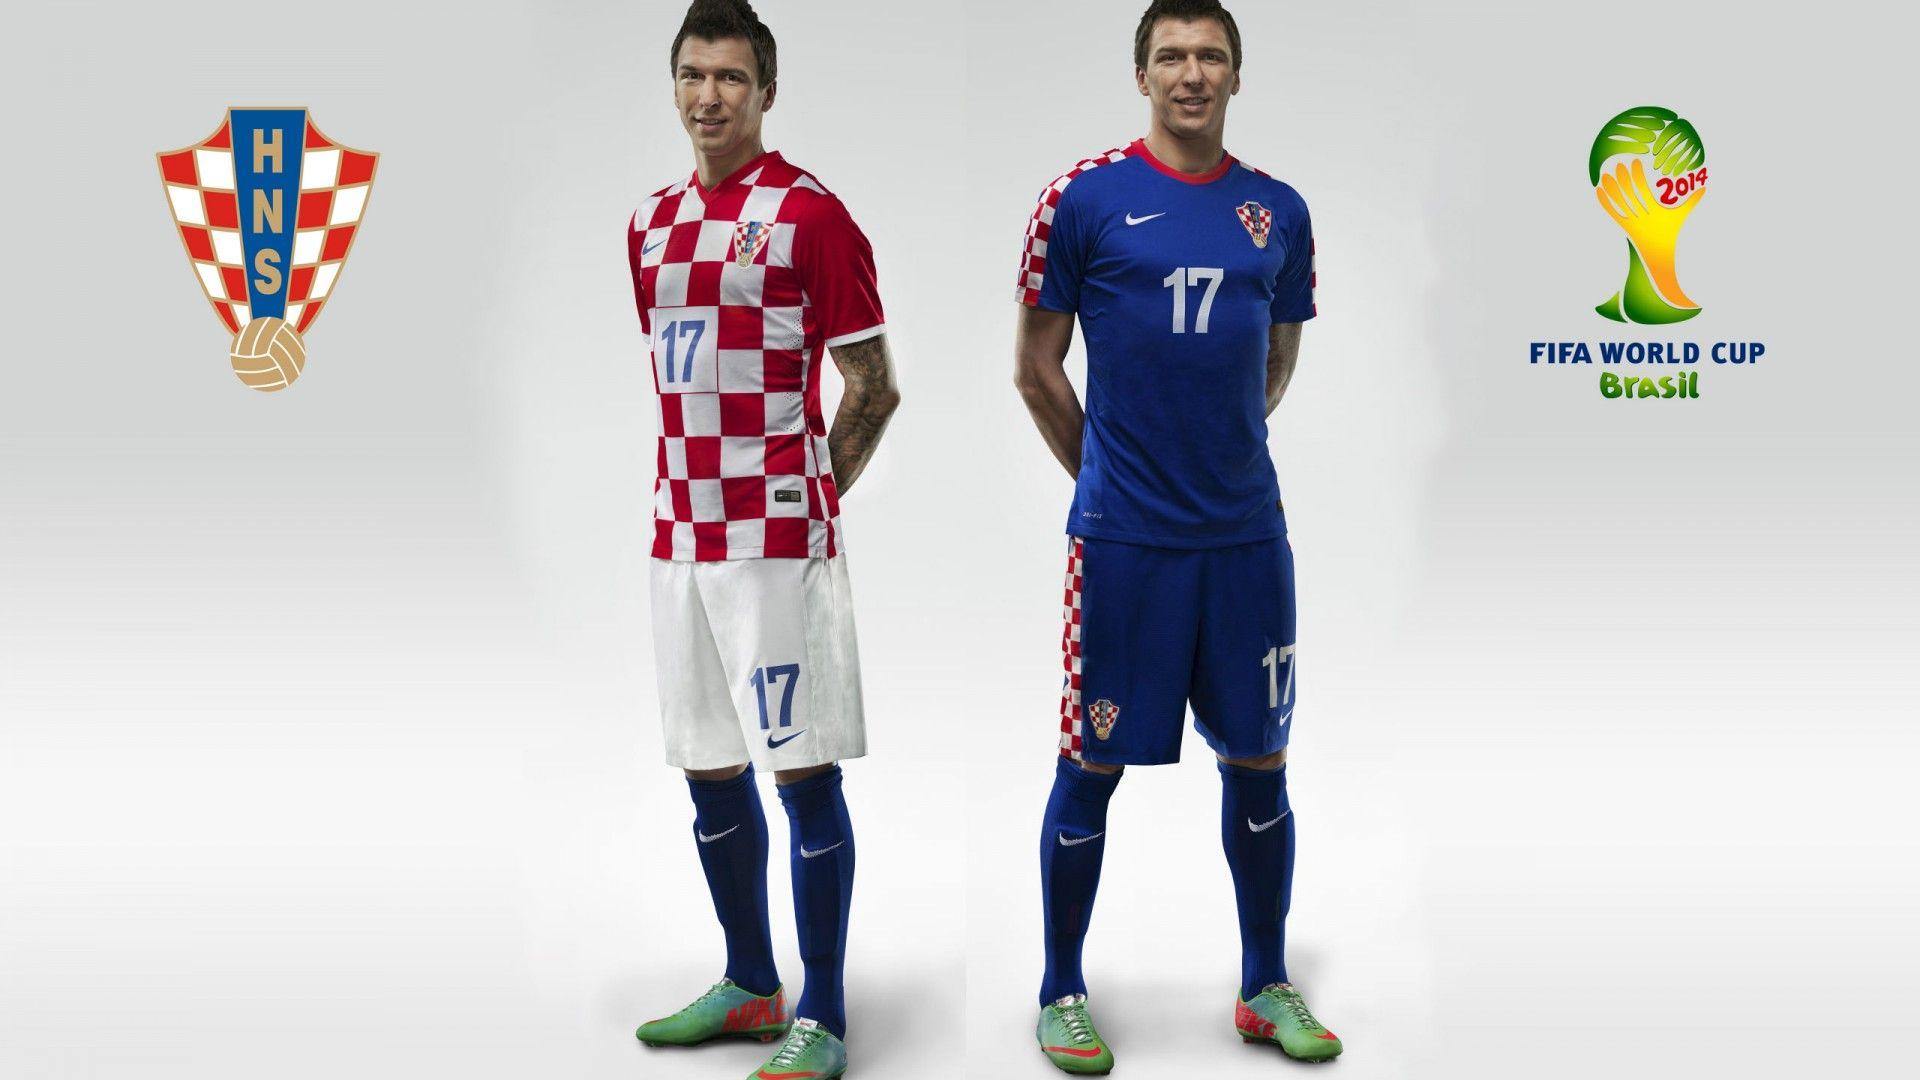 Croatia Football Wallpaper, Backgrounds and Picture.